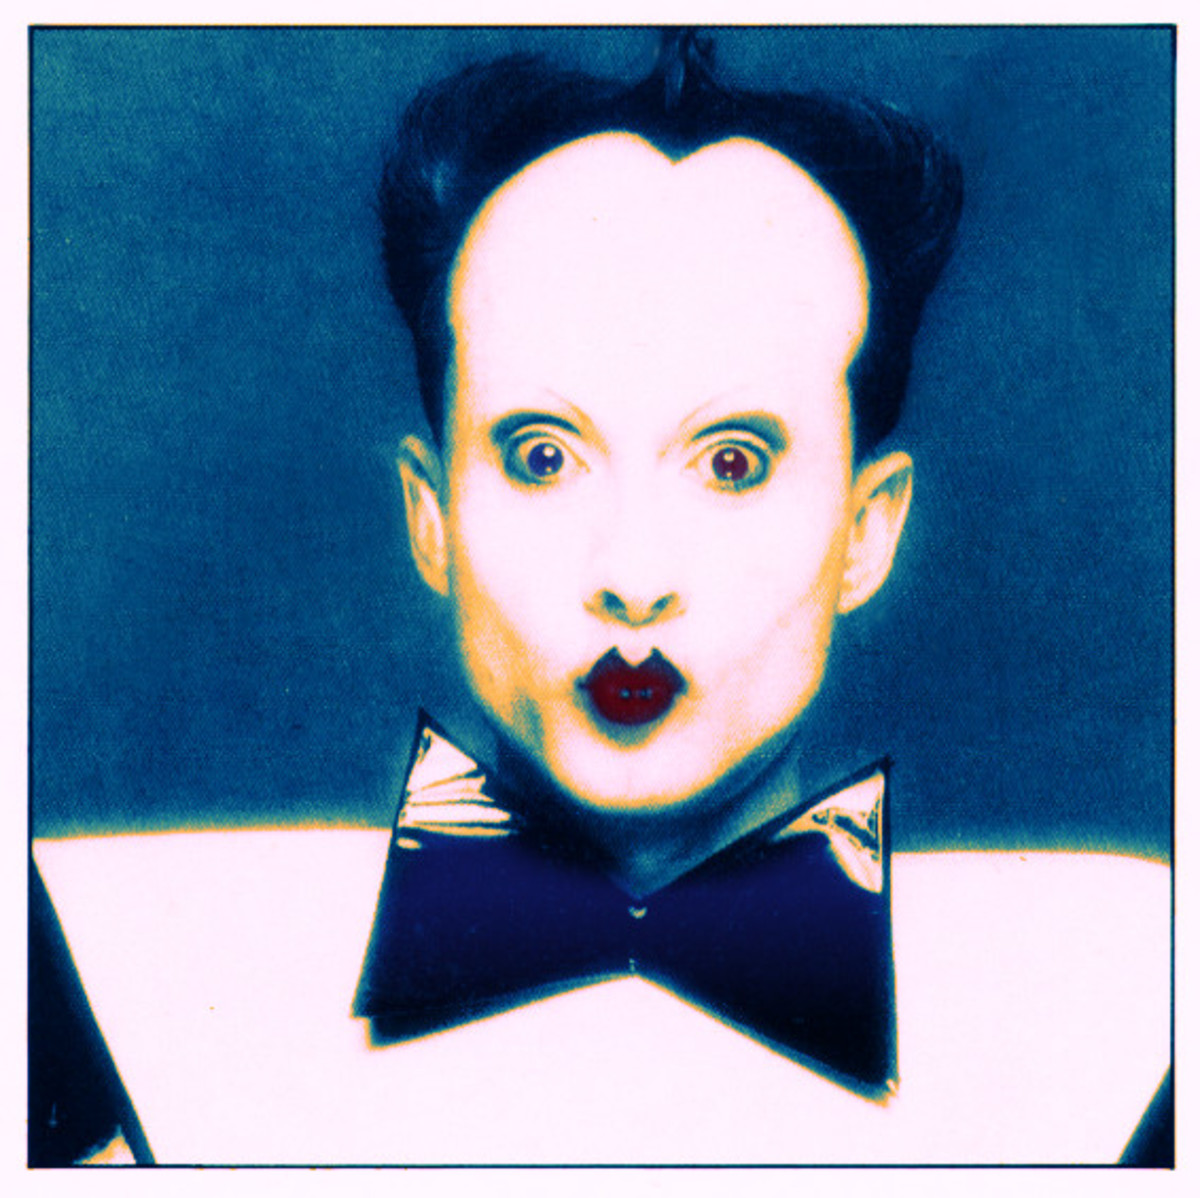 klaus-nomi-the-original-lady-gaga